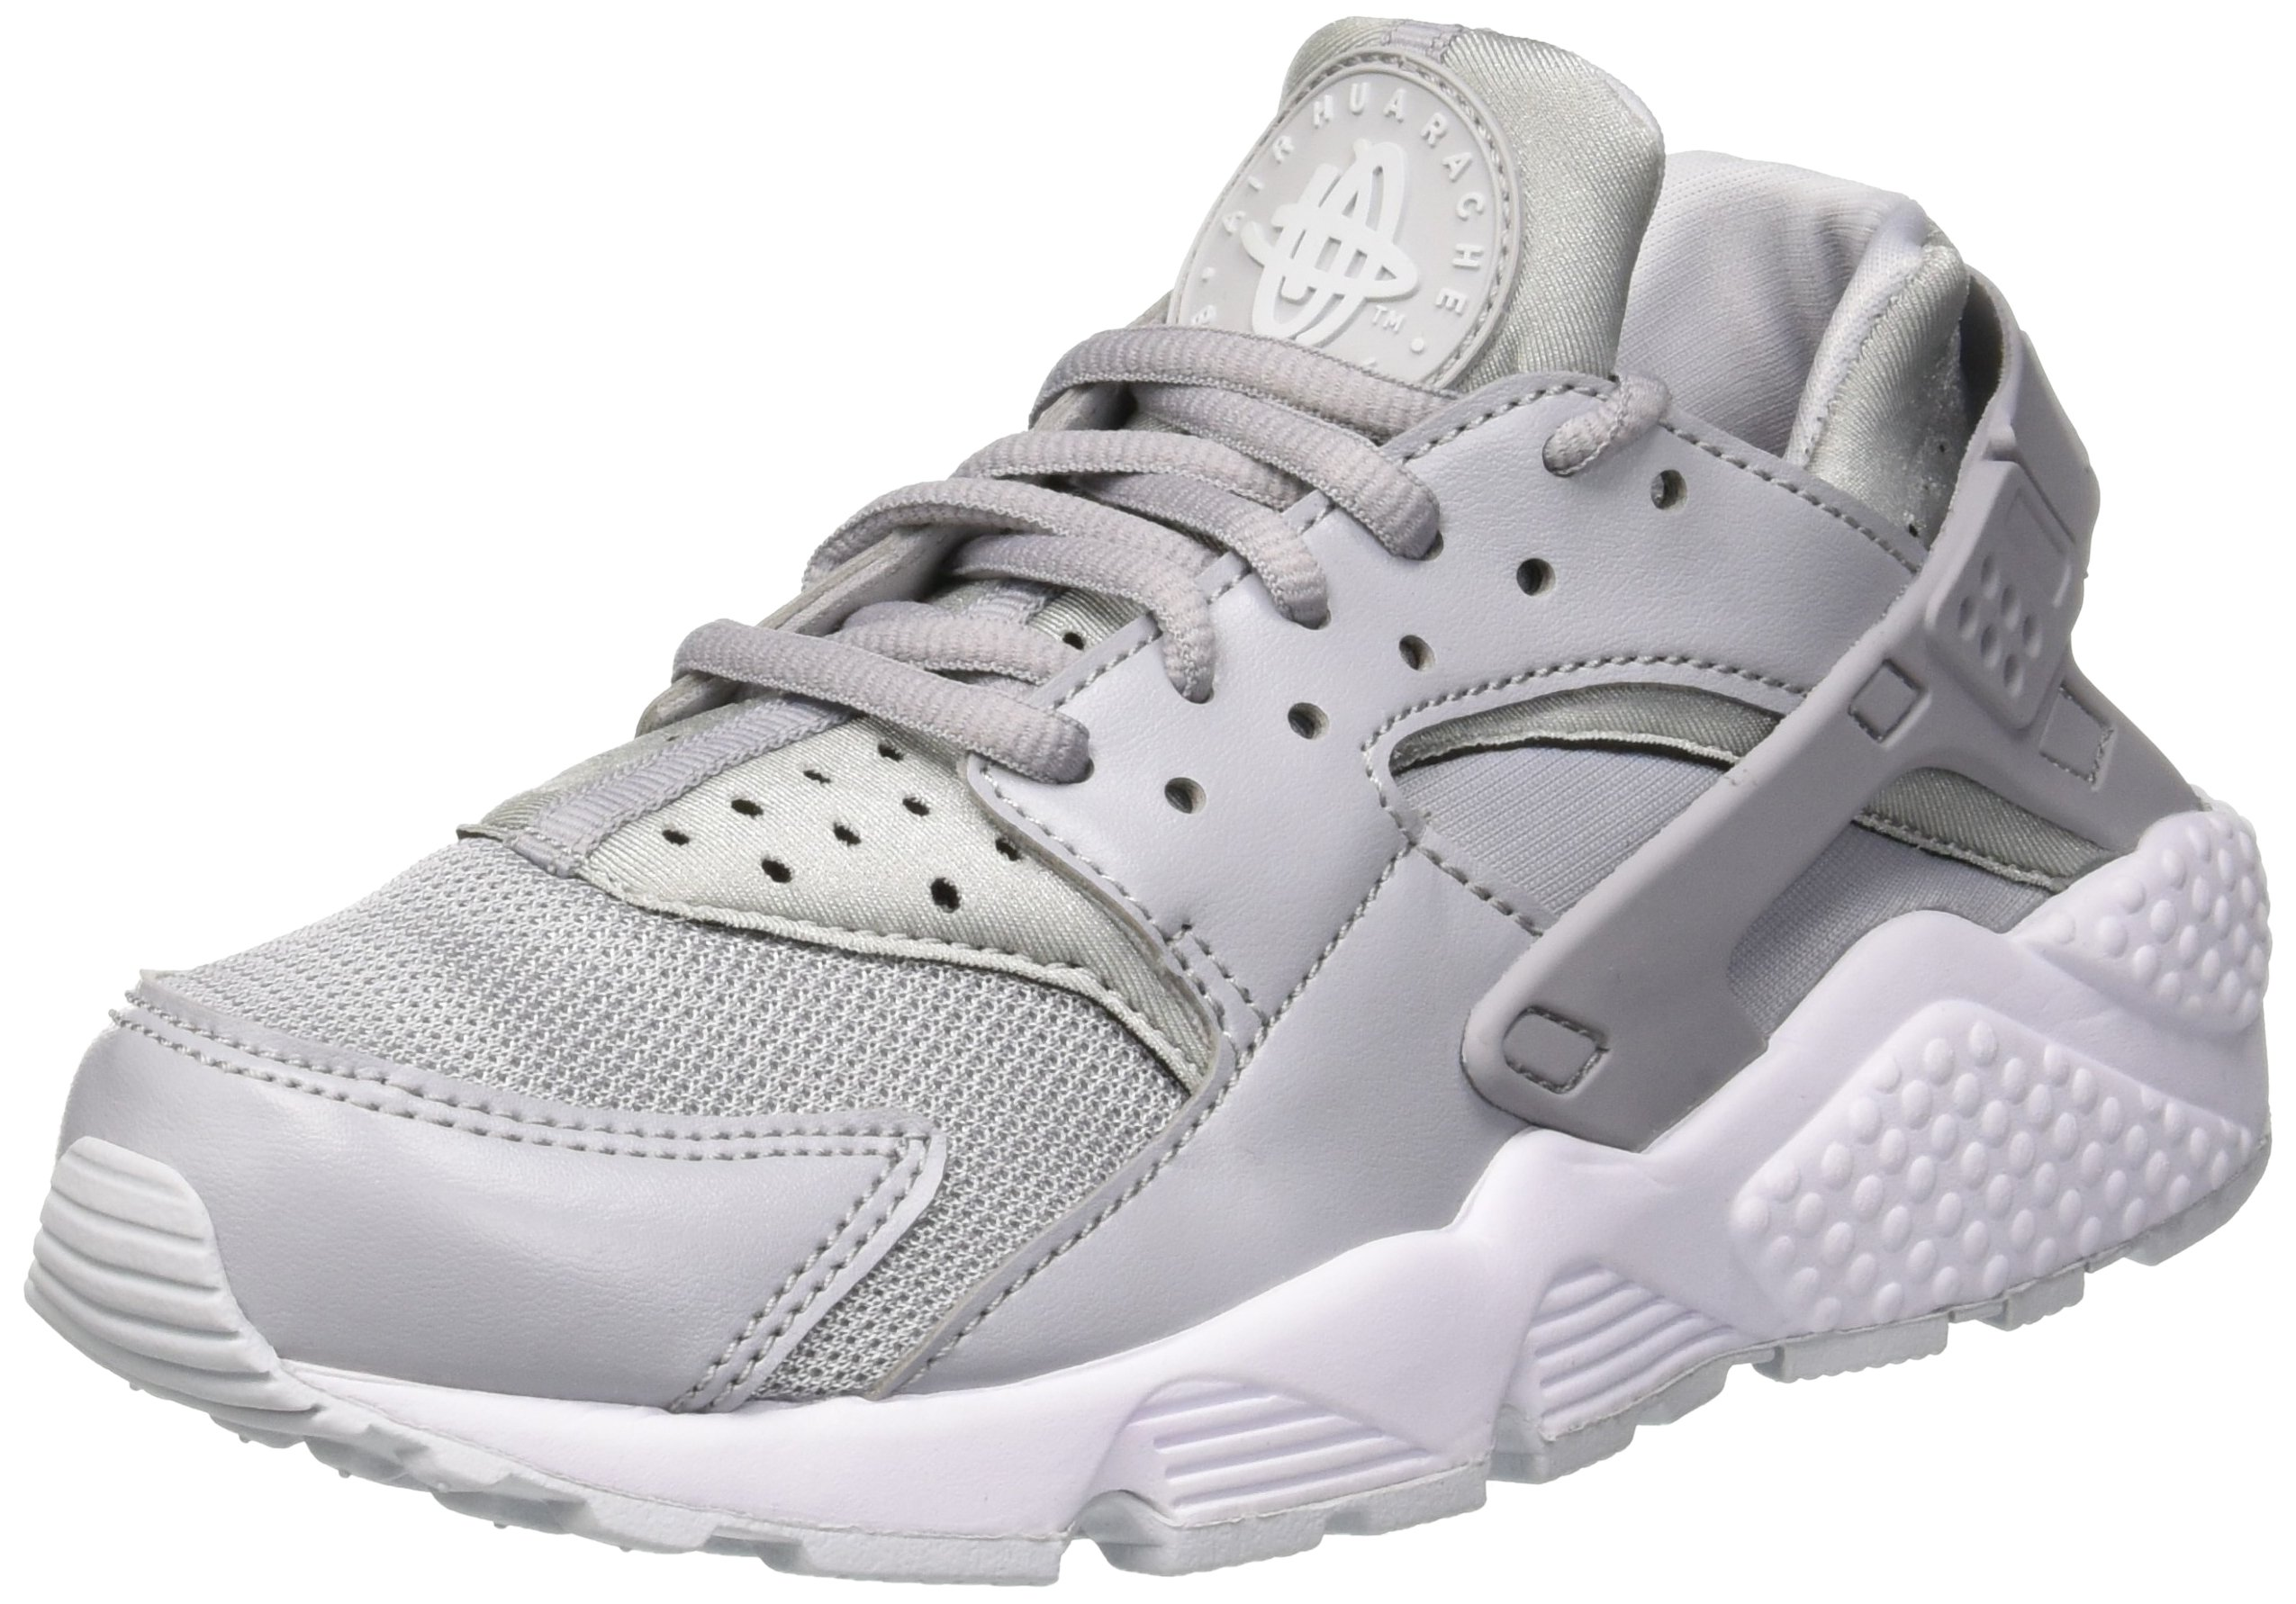 sneakers for cheap 0b261 fb8fa Galleon - Nike Women s s Air Huarache Run Gymnastics Shoes Wolf Grey White Pure  Platinum 032, 5 UK 38.5 EU